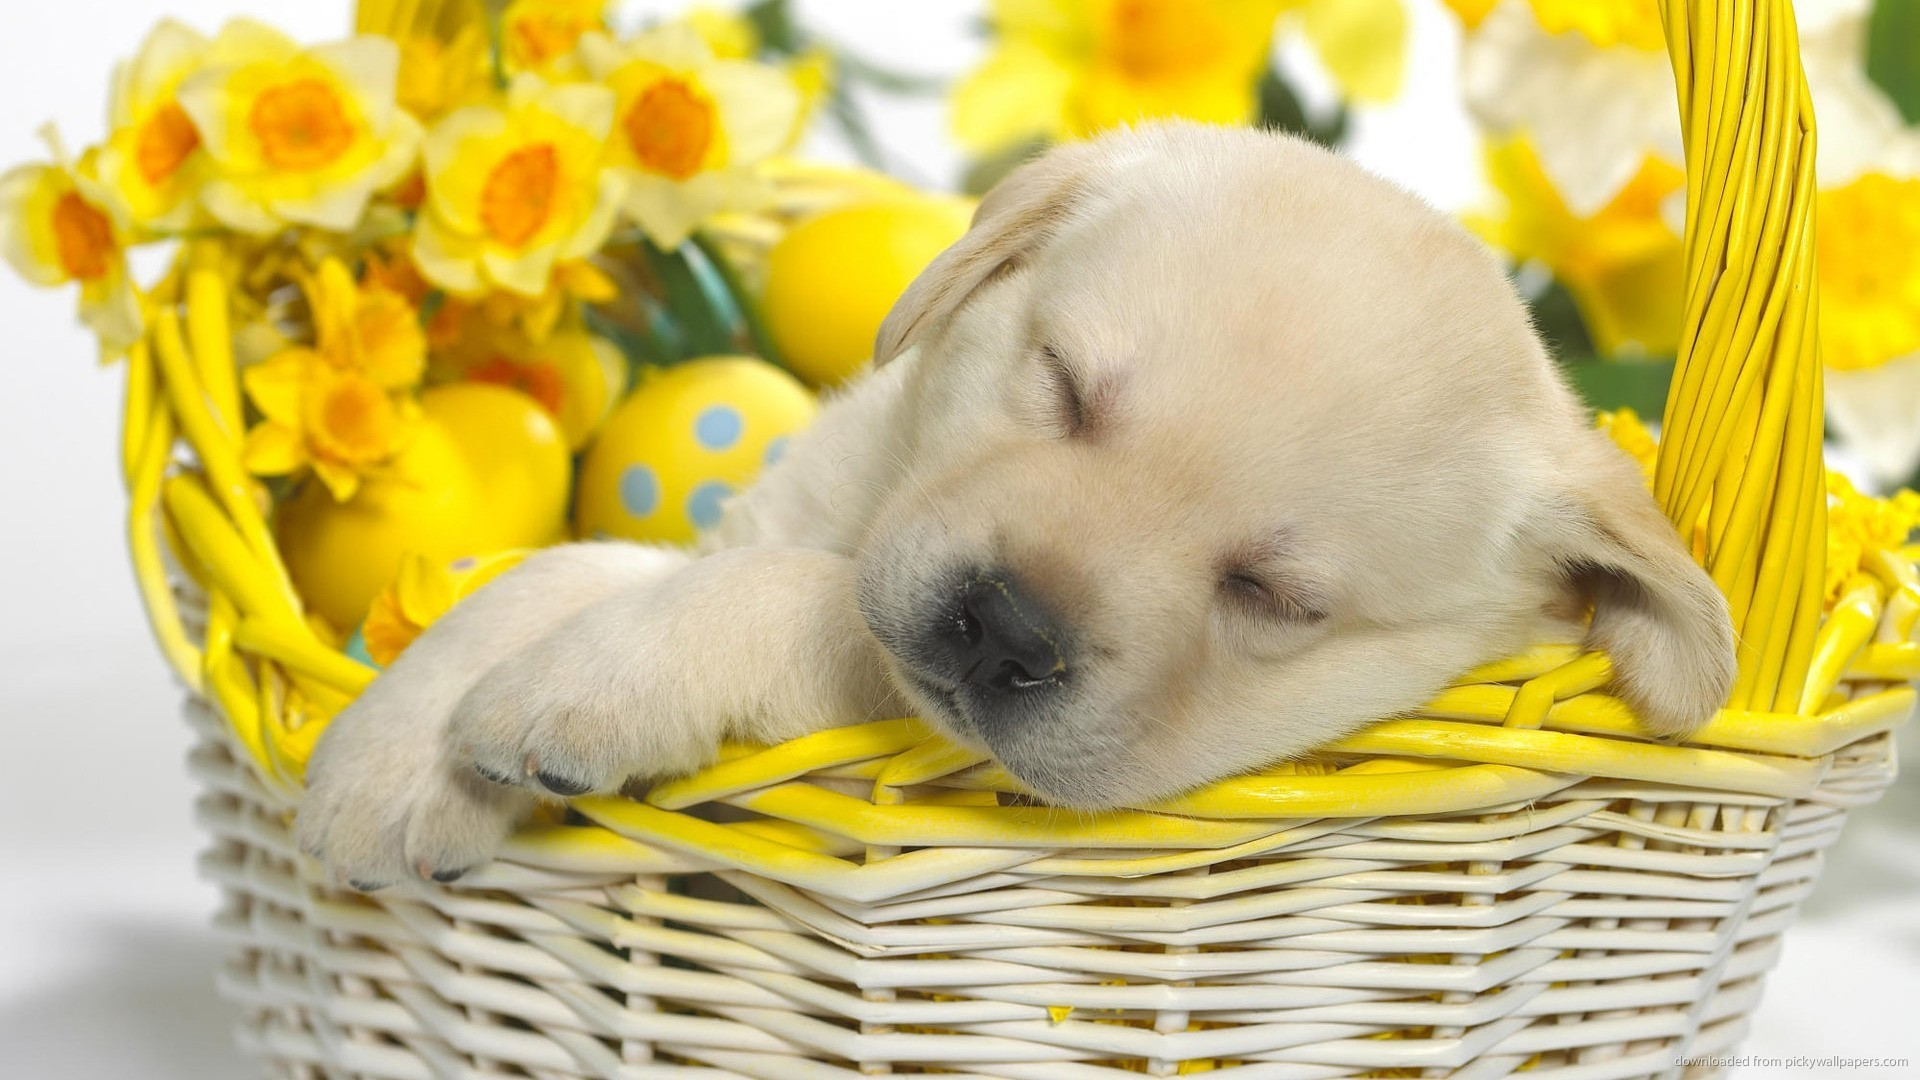 ... [ratio] => 16x9 [color] => [itemTitle] => Array ( [0] => wallpaper [1] => wallpapers ) [options] => Array ( ) ) Cute puppy sleeping in an Easter basket ...